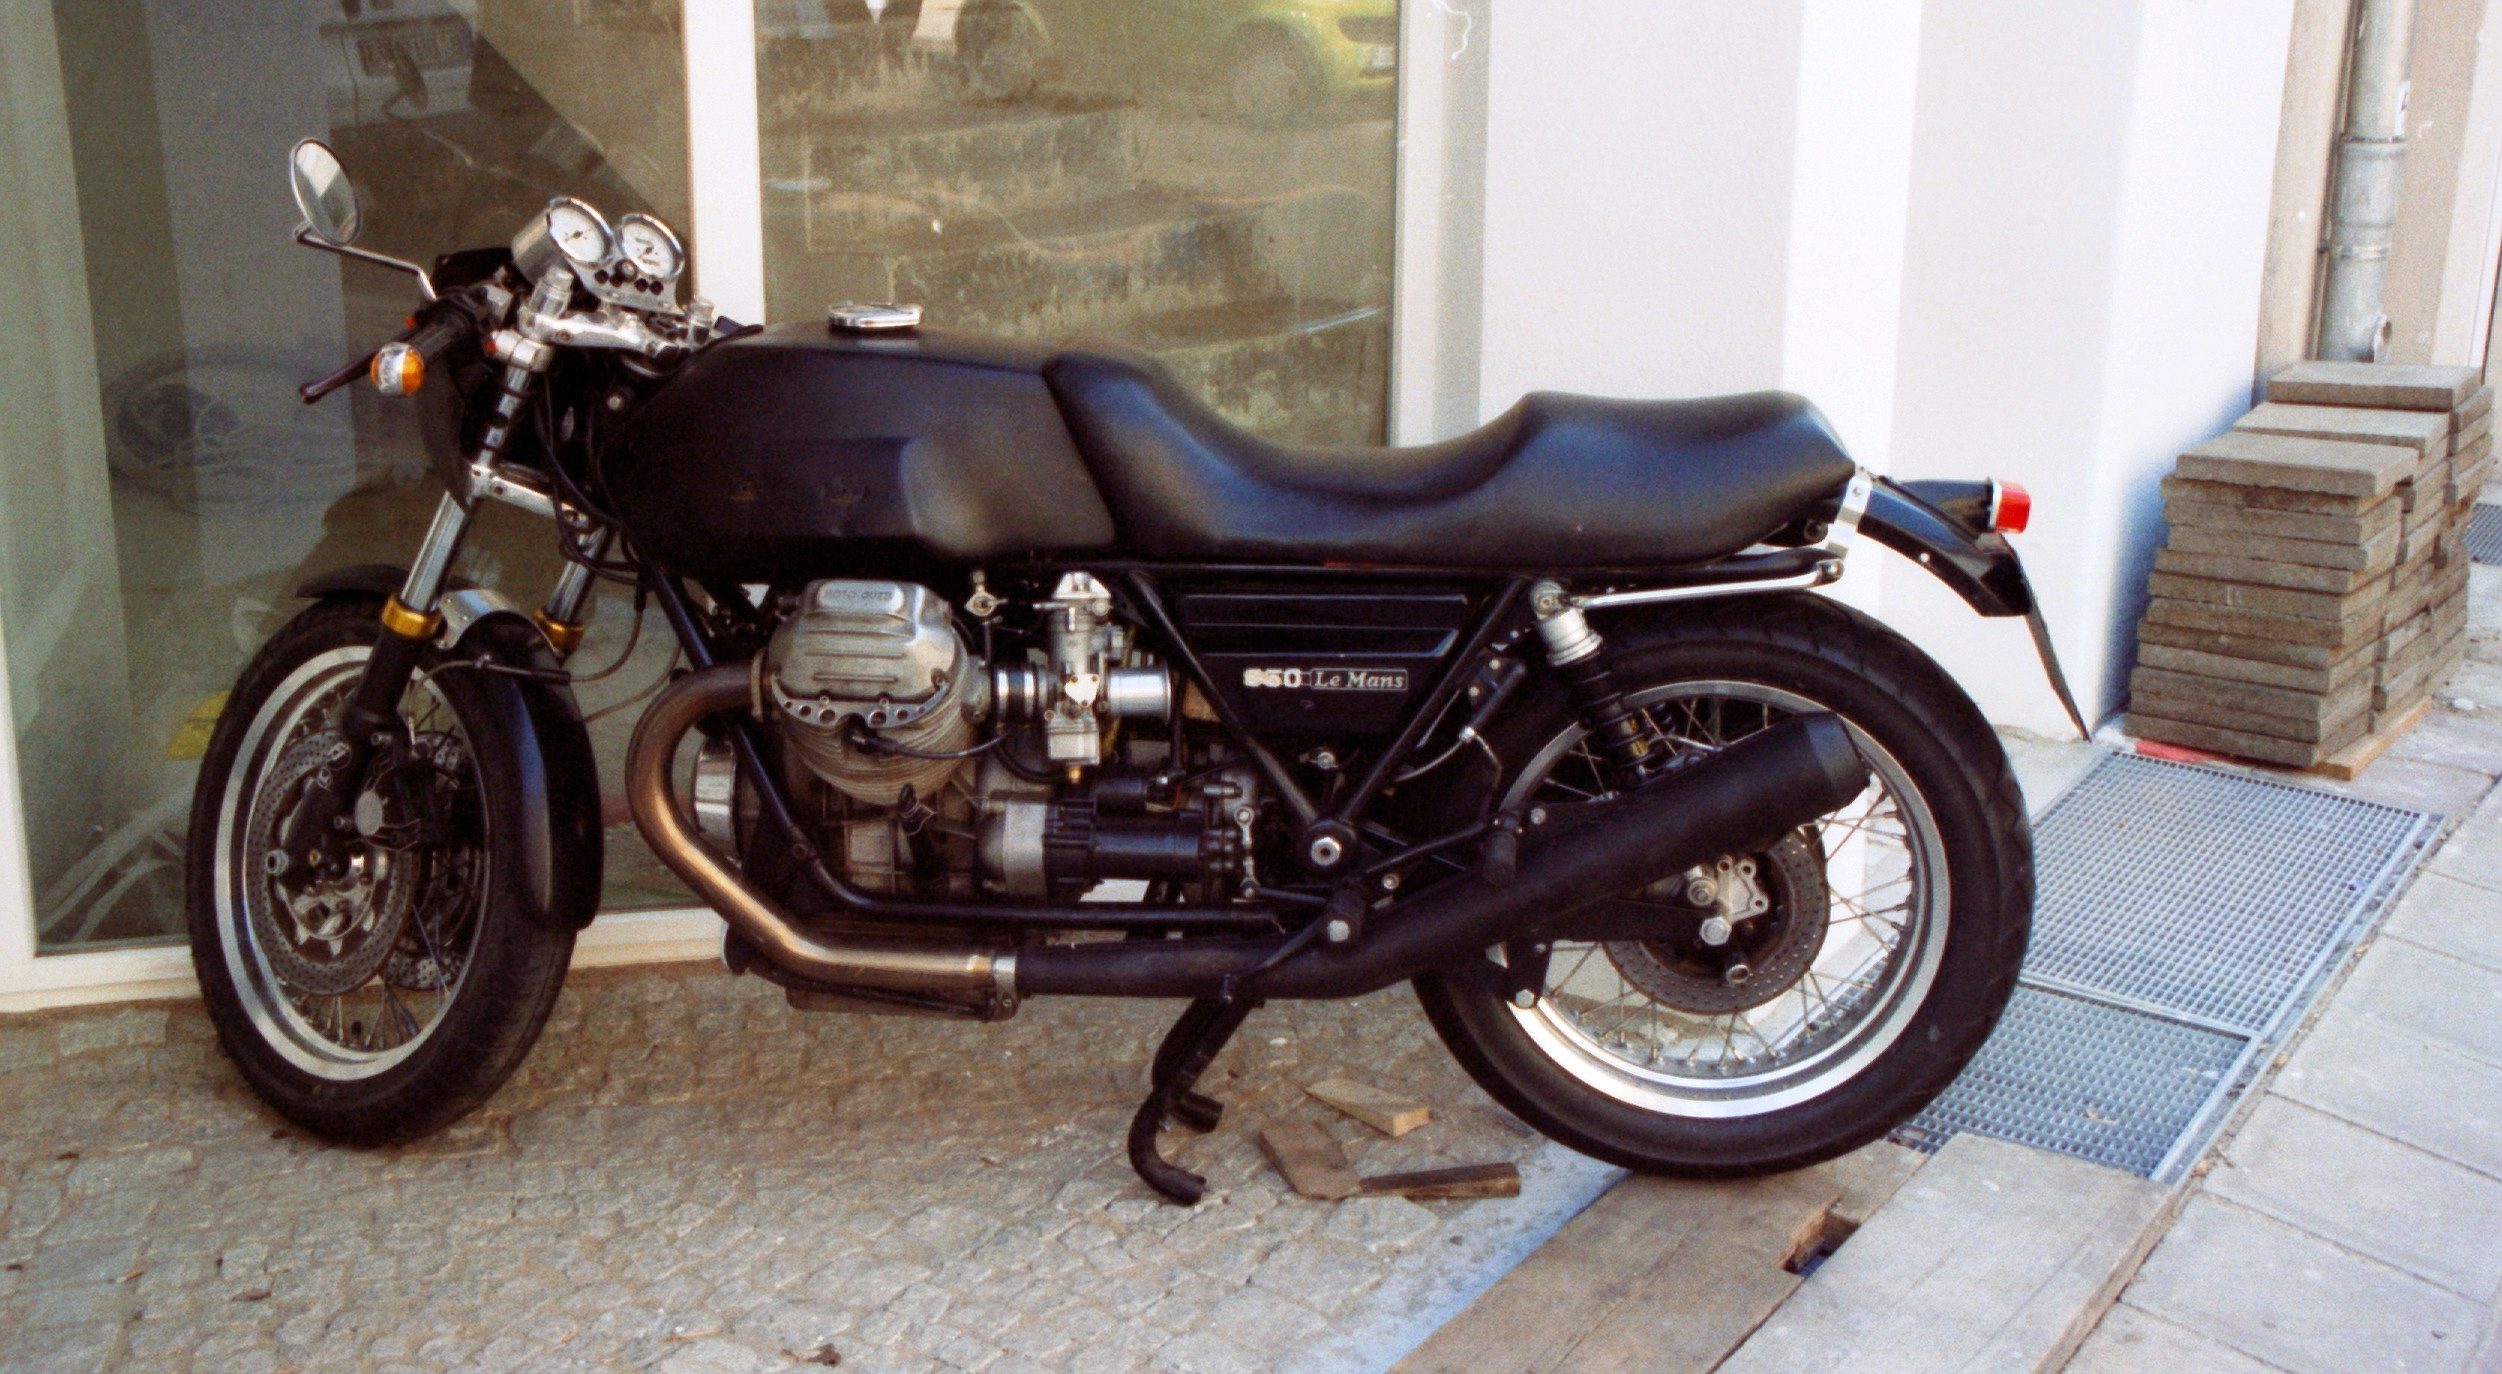 Moto Guzzi California III 1993 images #108670